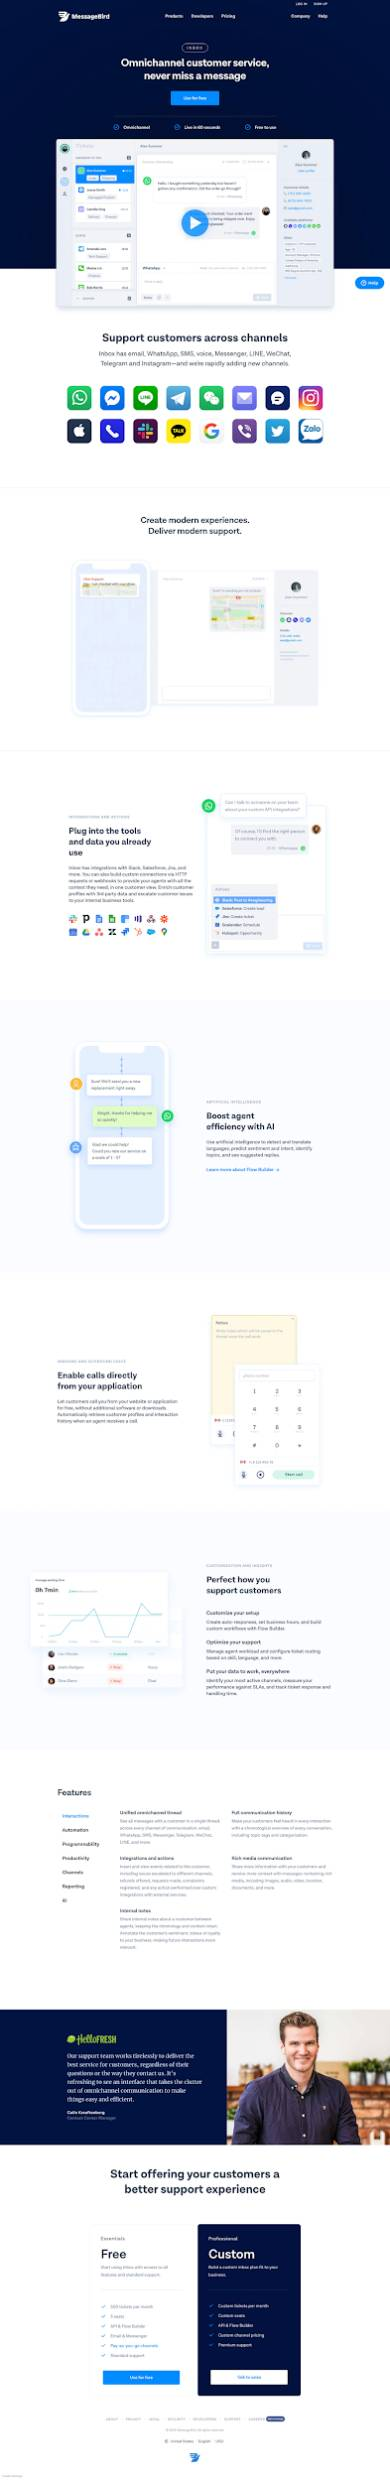 visuals in landing pages 4